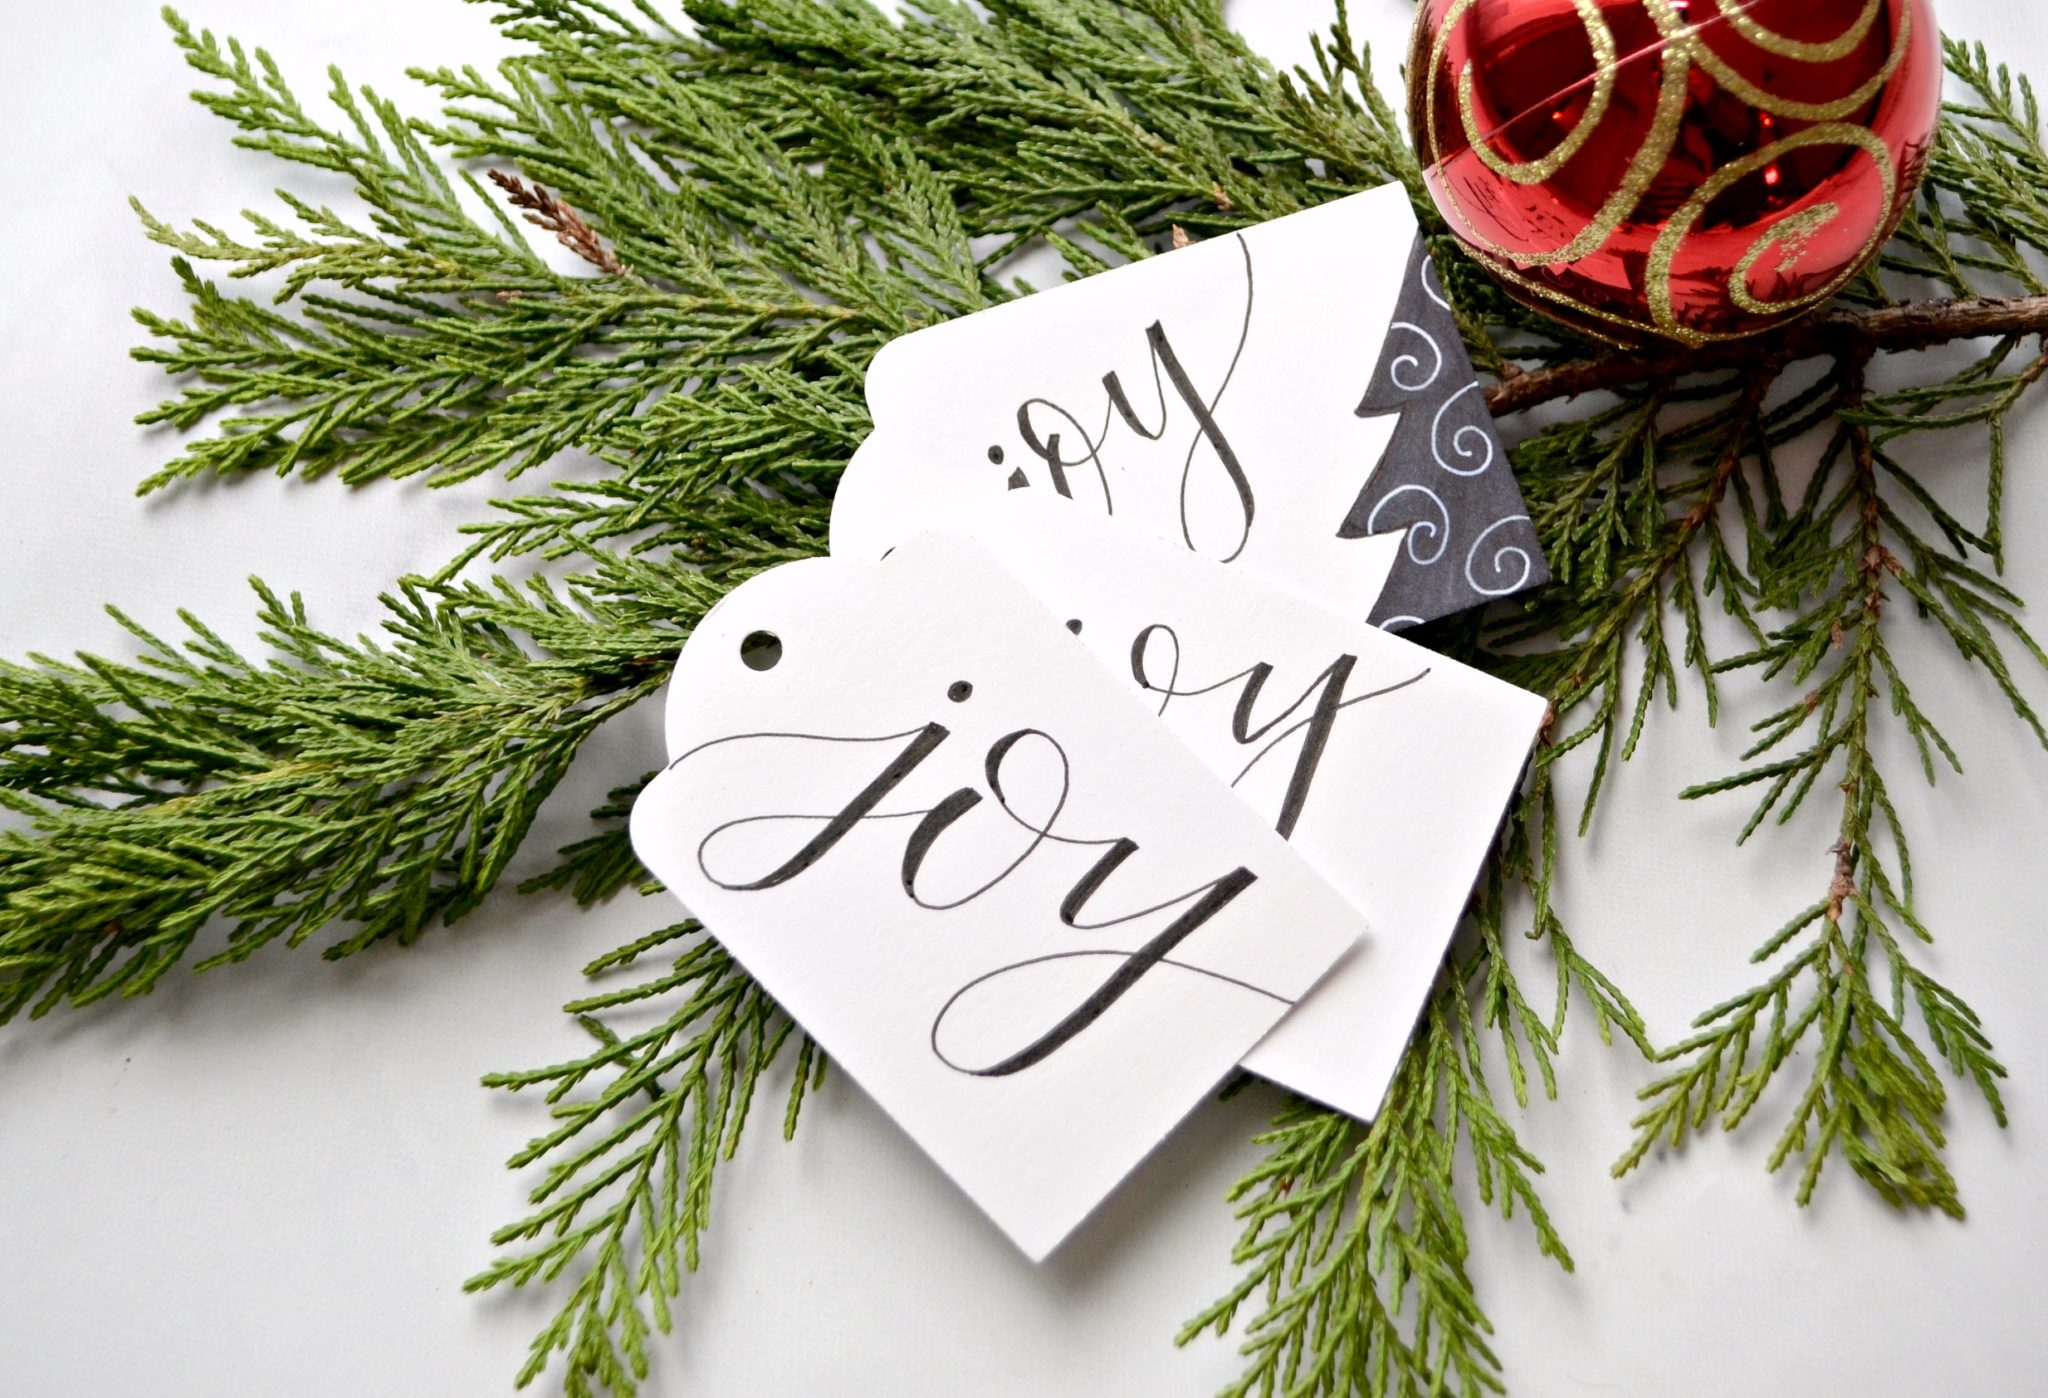 Free Printable Hand Lettered Gift Tags + Tutorial